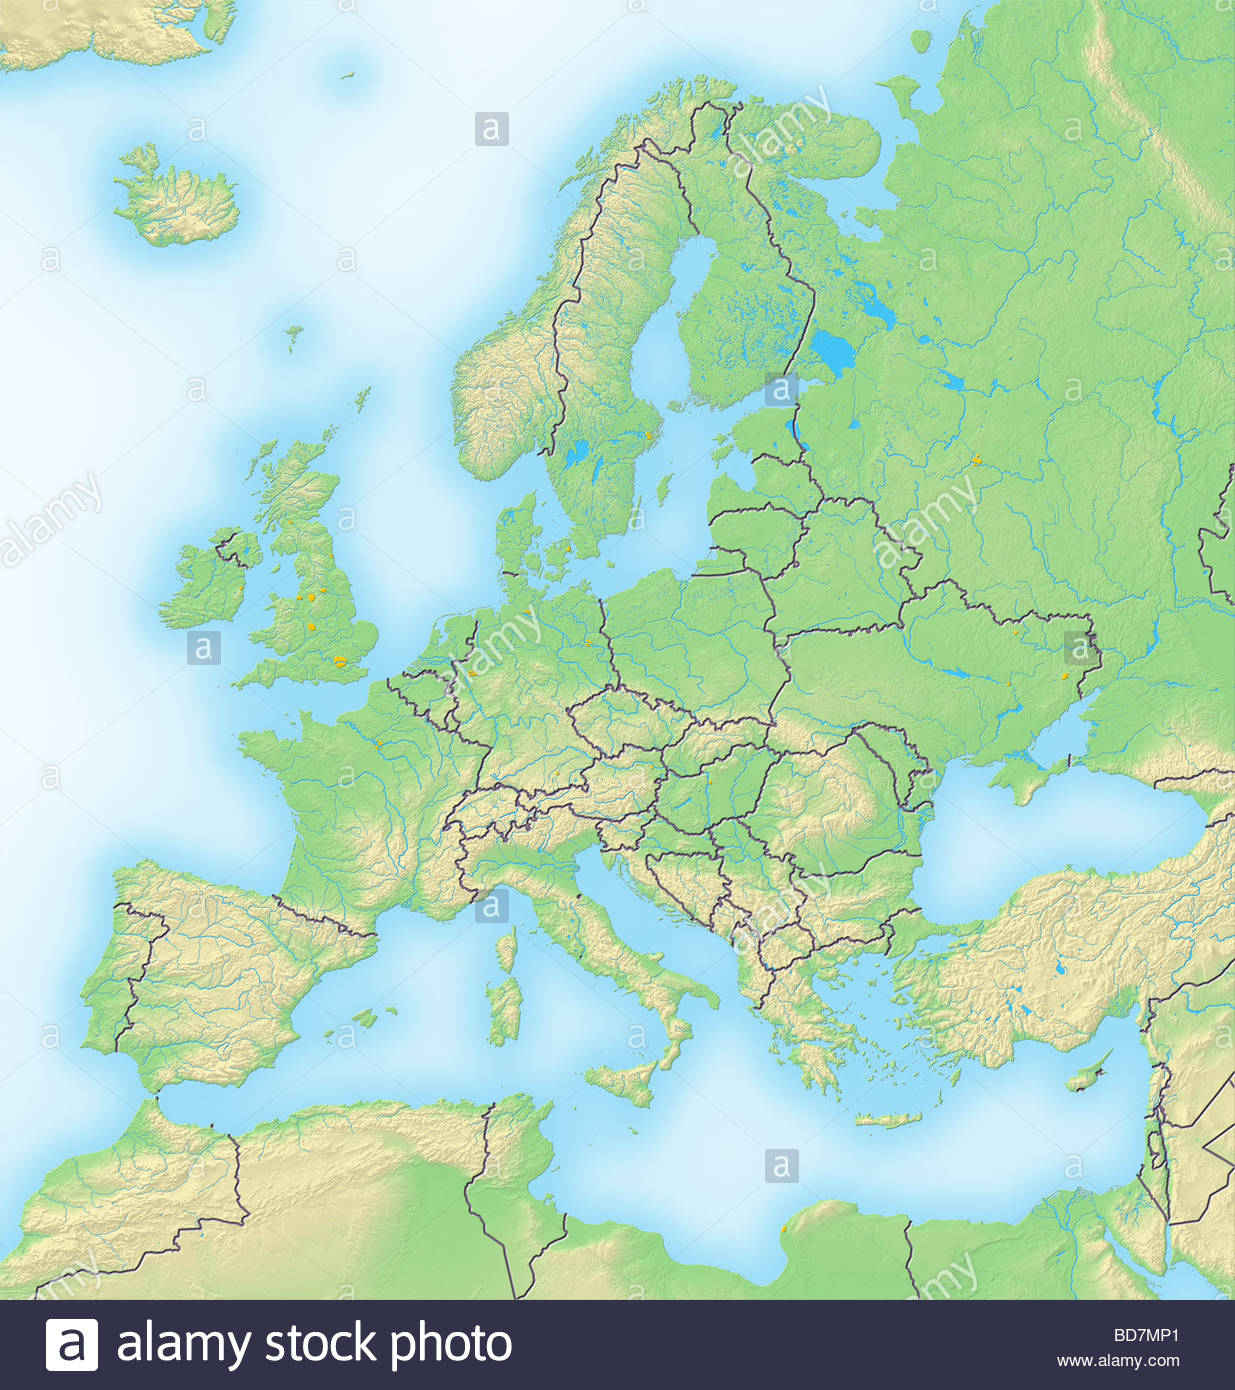 Map Of Europe Stock Photos & Map Of Europe Stock Images - Alamy pour Carte De L Europe En Relief